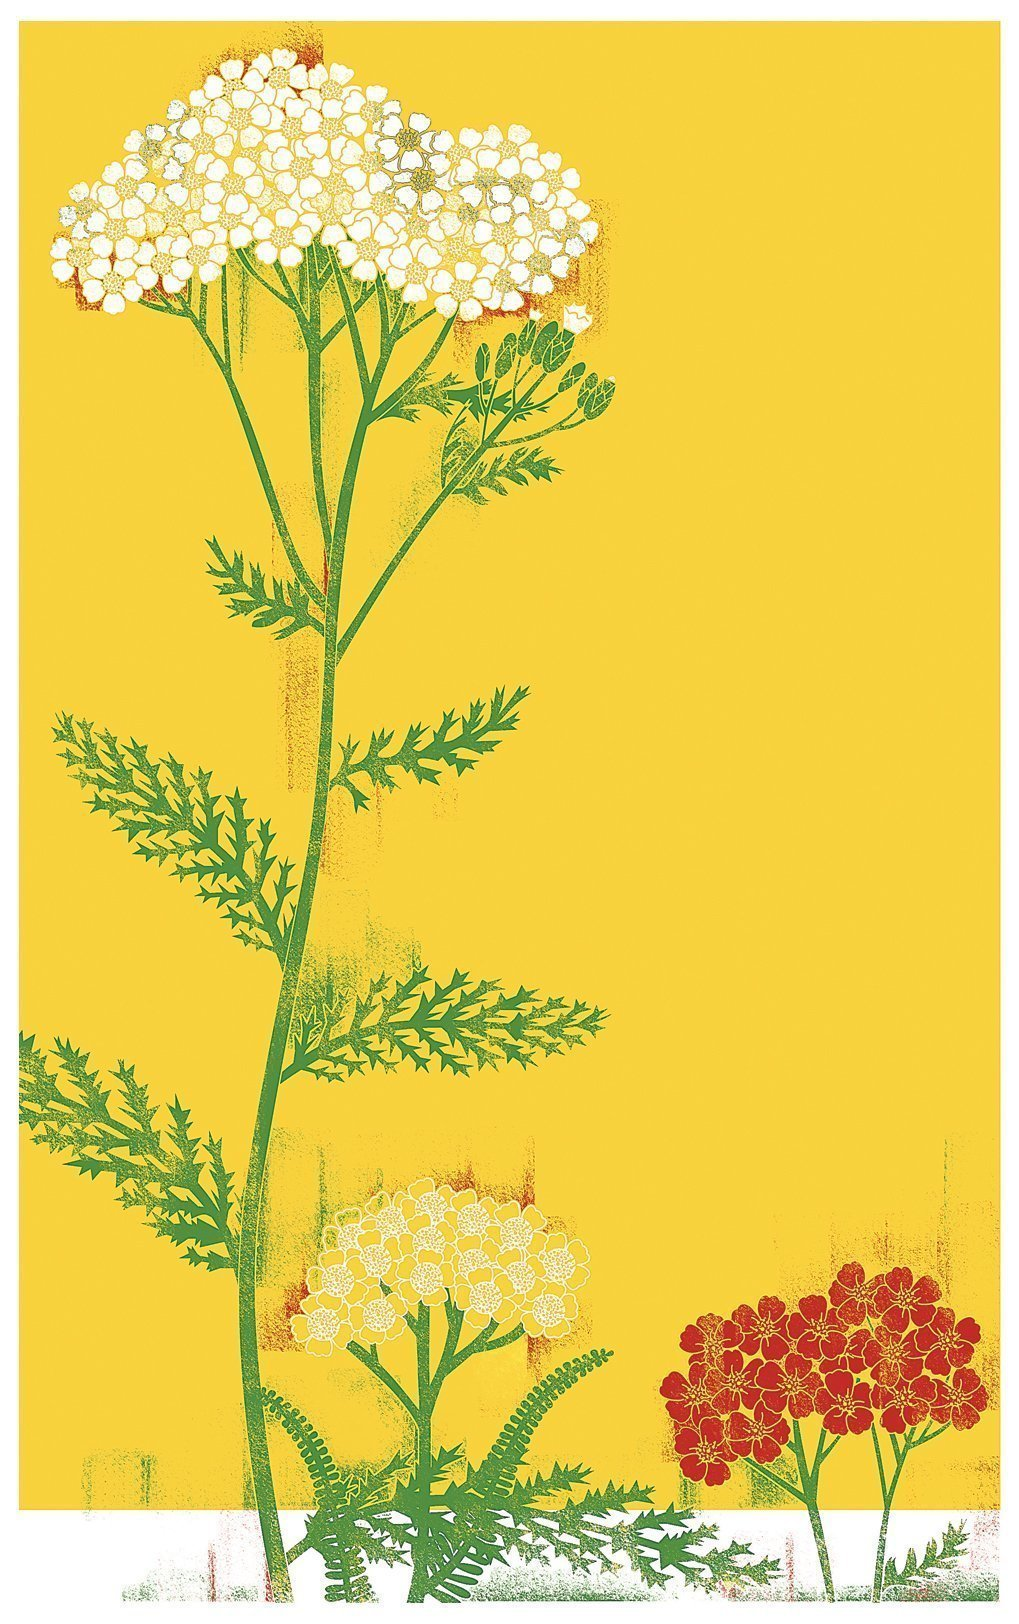 Hardy yarrow can color your world.